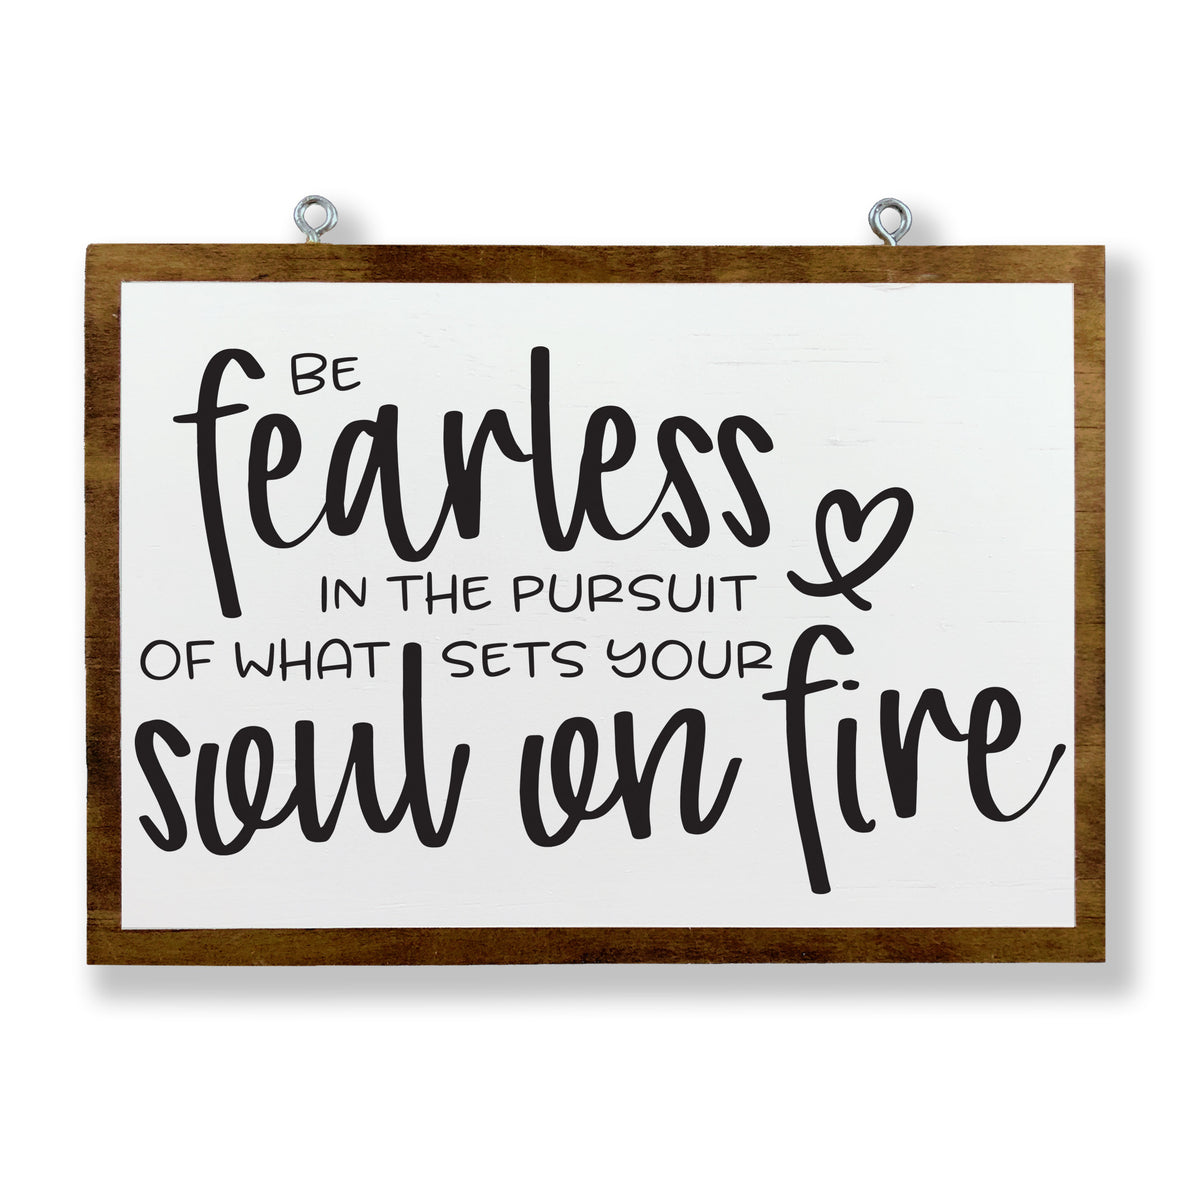 Be Fearless in the Pursuit of What Sets Your Soul On Fire